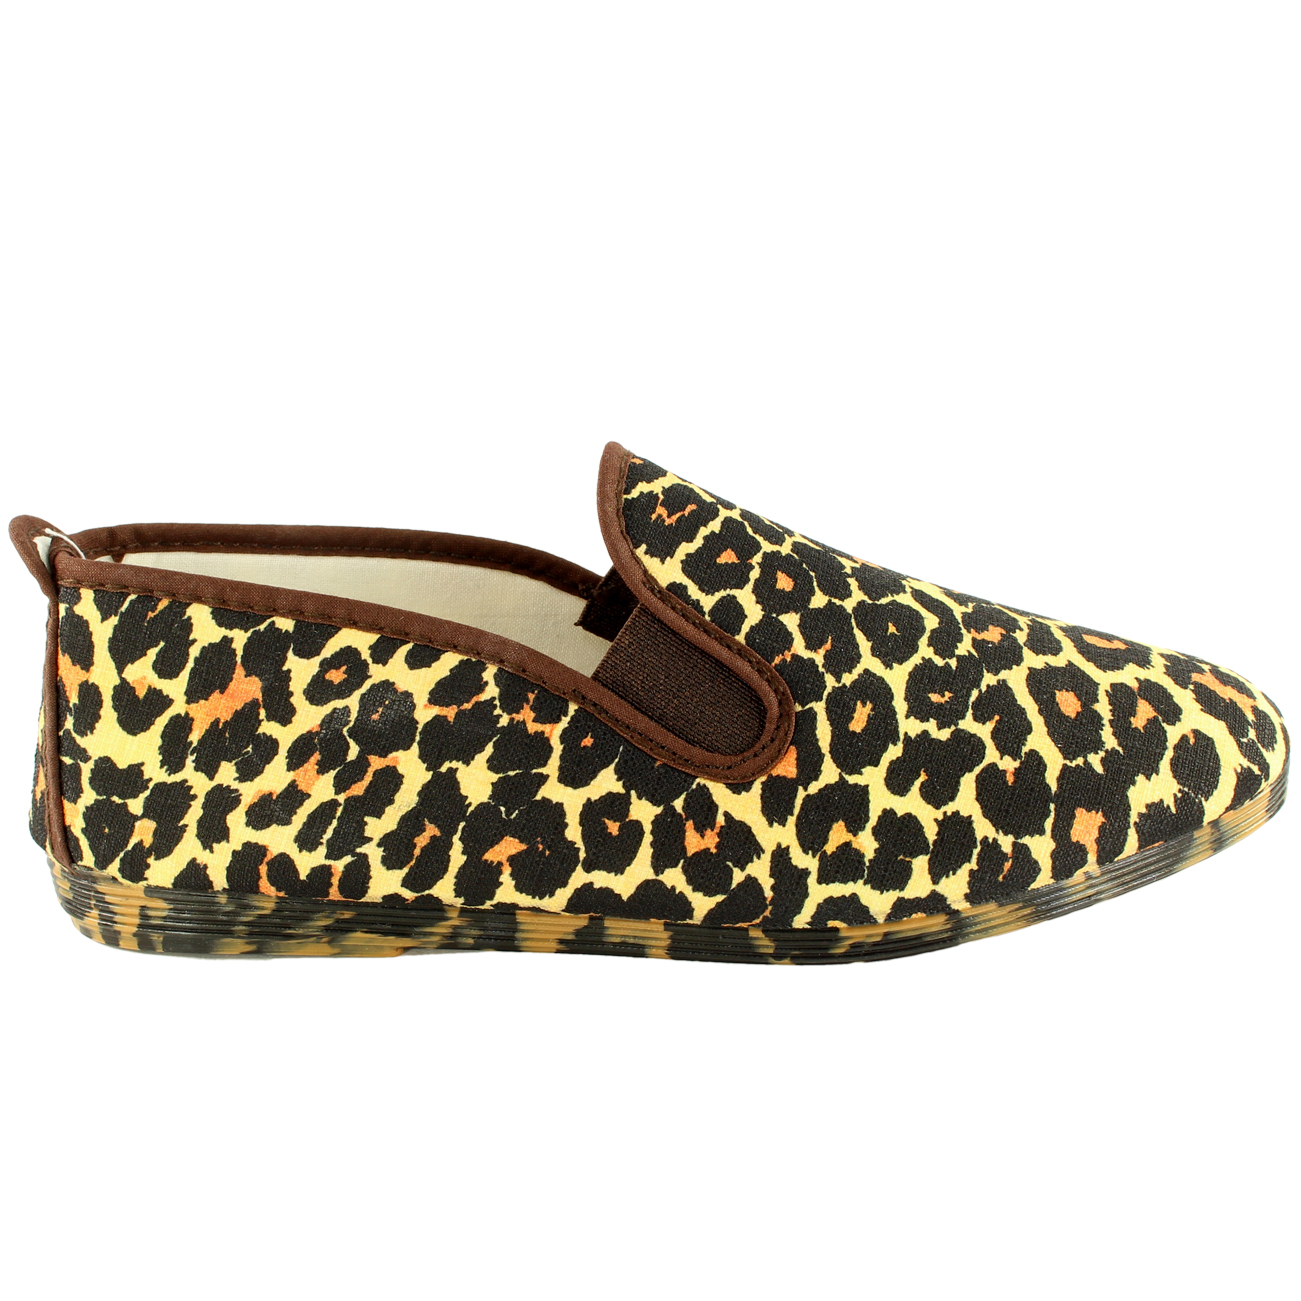 Womens Kung-Fu Flossy Ezcaray Leopard Print Slip On Espadrille Flat Shoes UK 3-8 | EBay